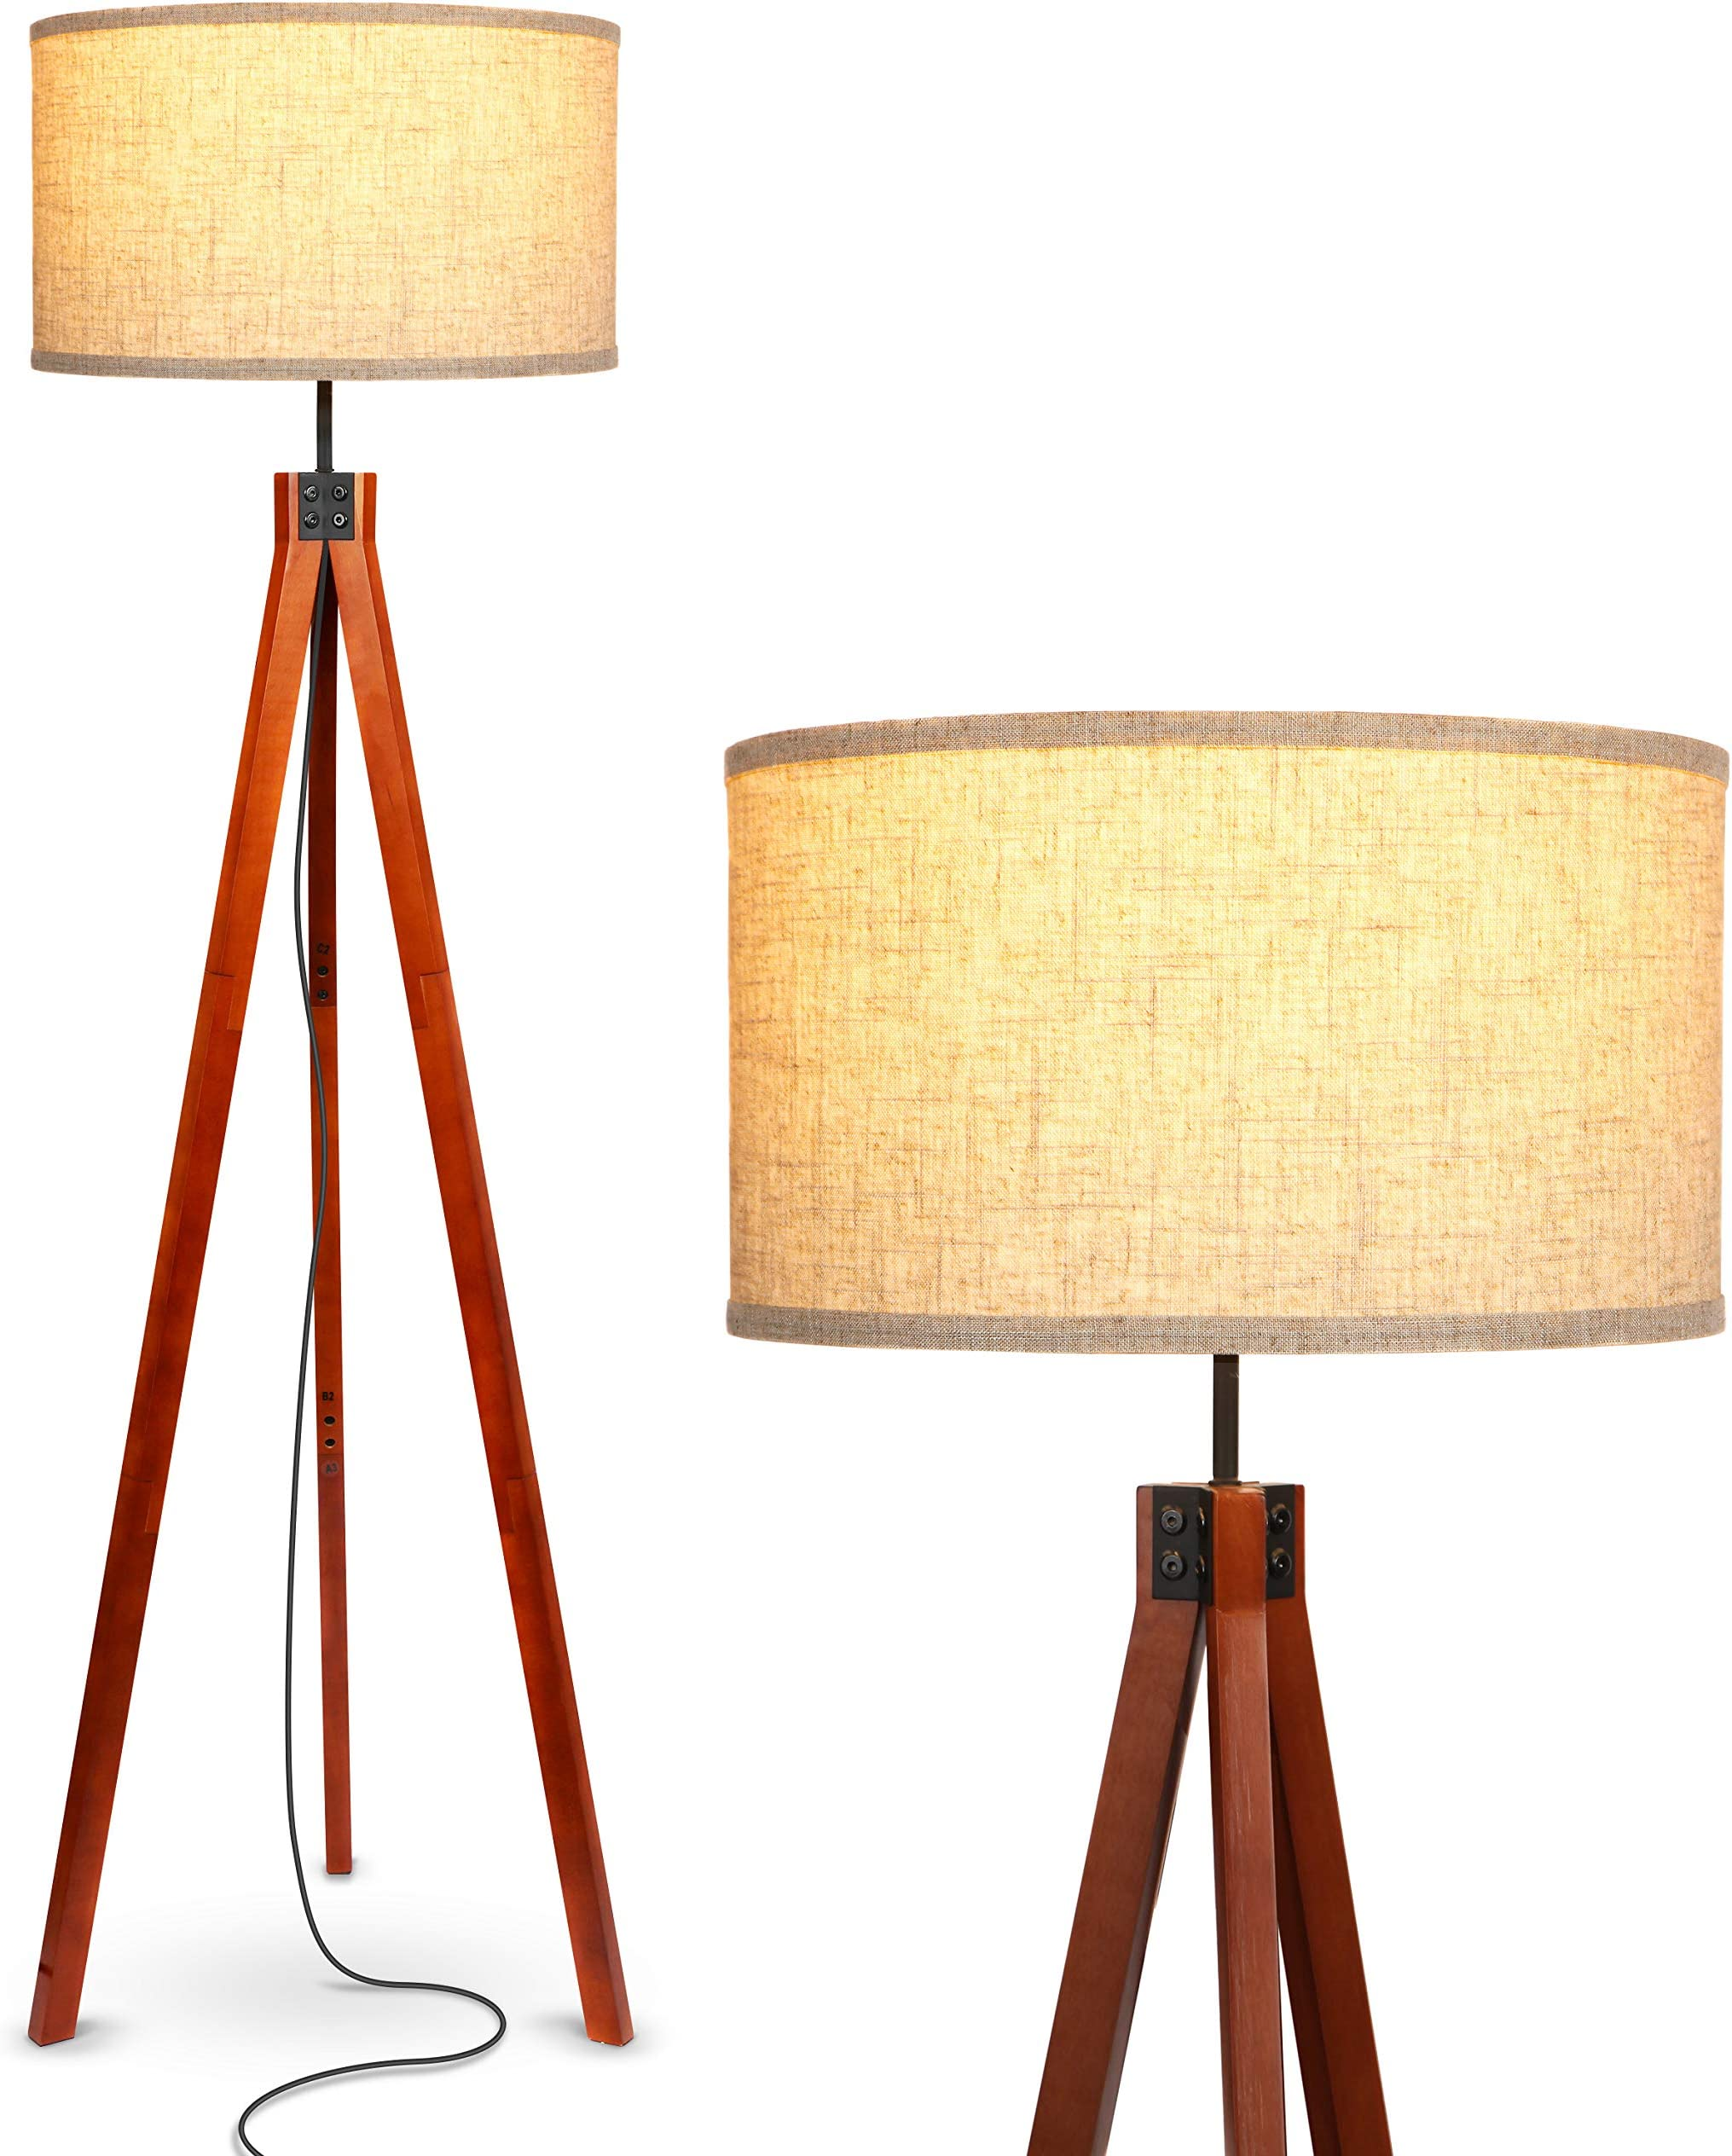 vintage ground lamp whit table round floor lamp in solid cherry electric made in Italy floor lamp 3 bulbs wooden body floor lamp